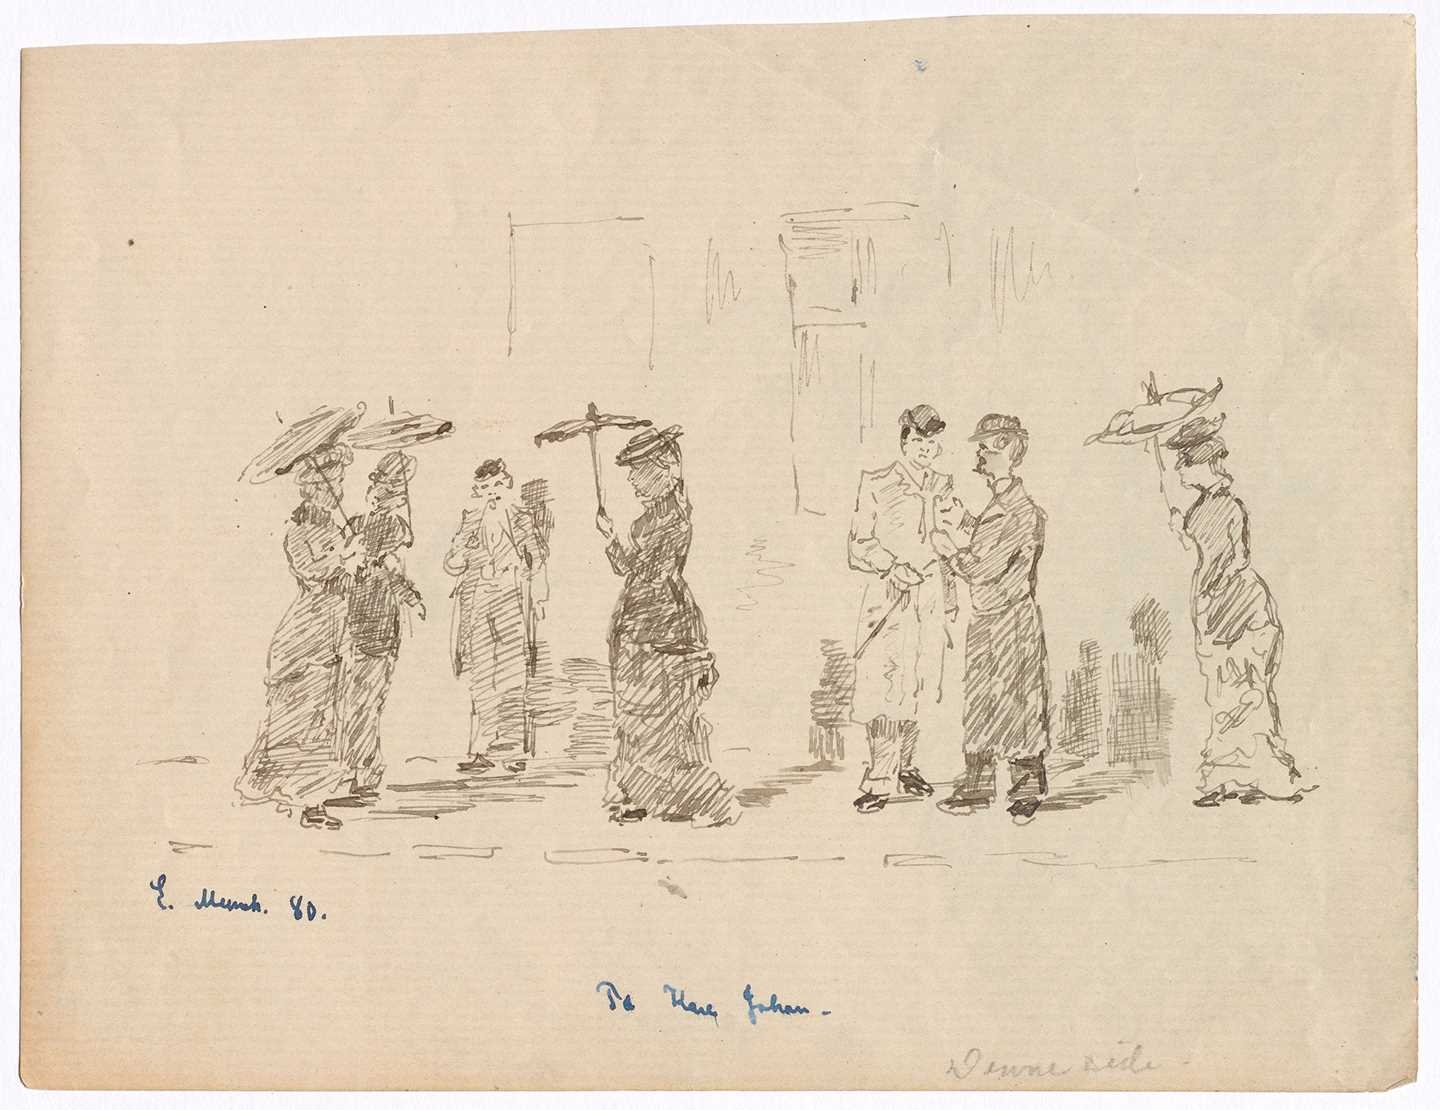 Edvard Munch: At Karl Johan. Pen on paper, 1880. Photo © Munchmuseet